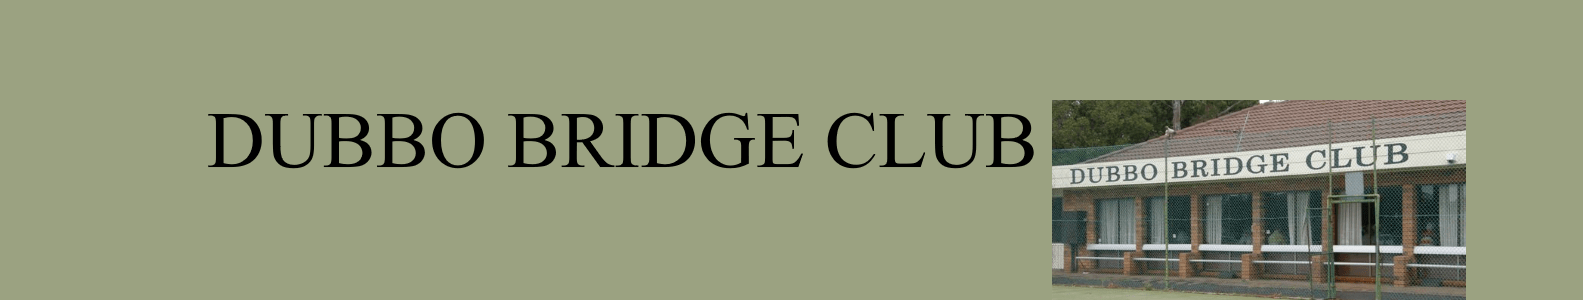 Results from Dubbo Bridge Club games